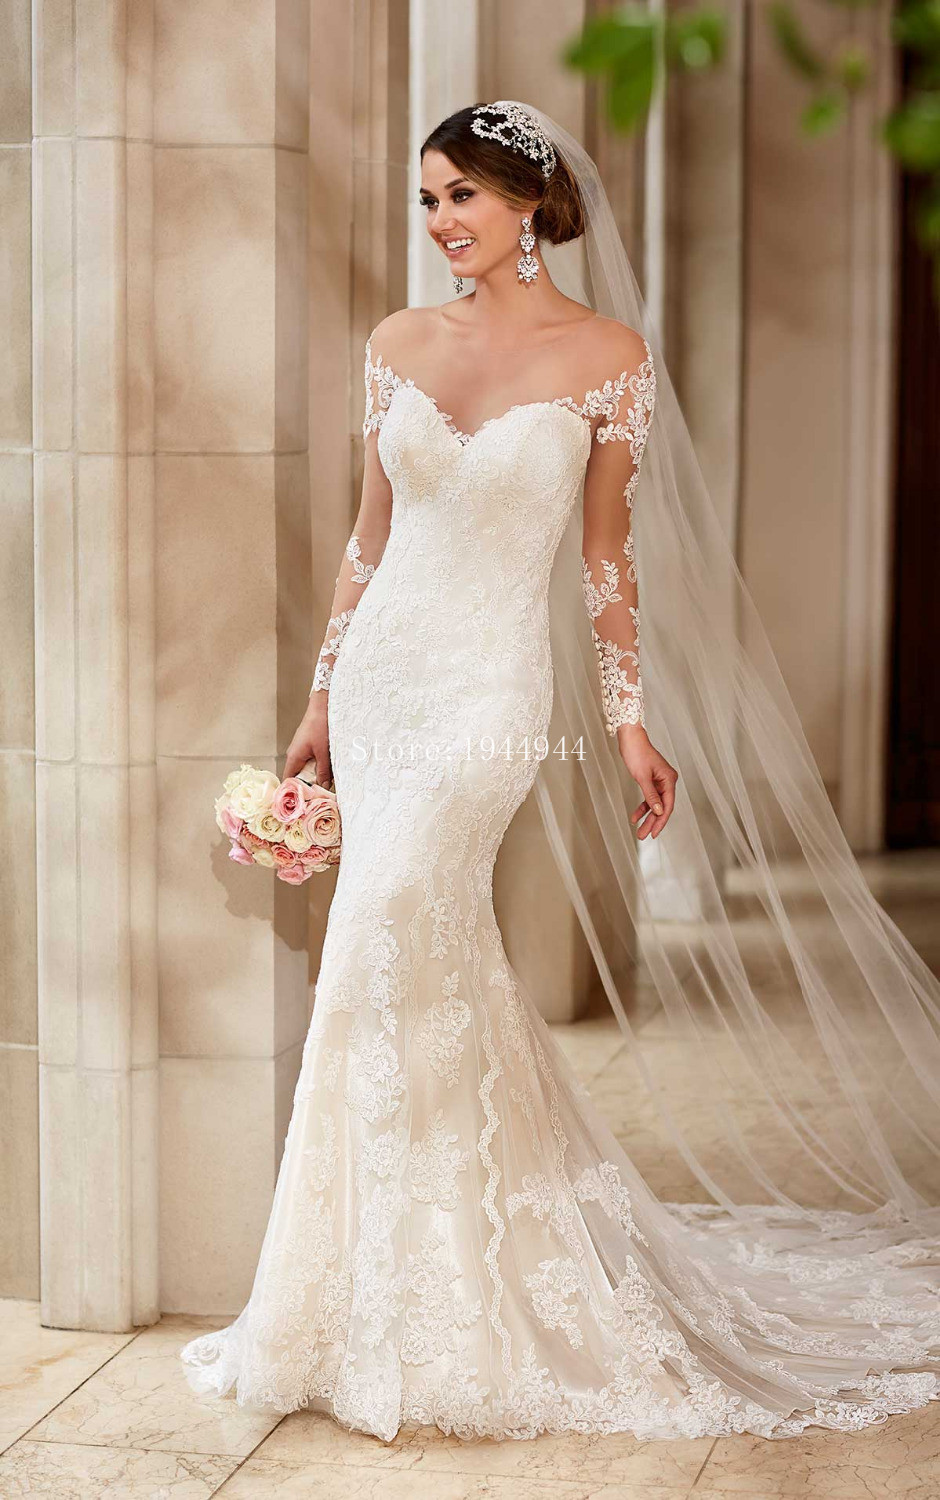 bridal gown sexy sheer back court train tight bodice wedding dress